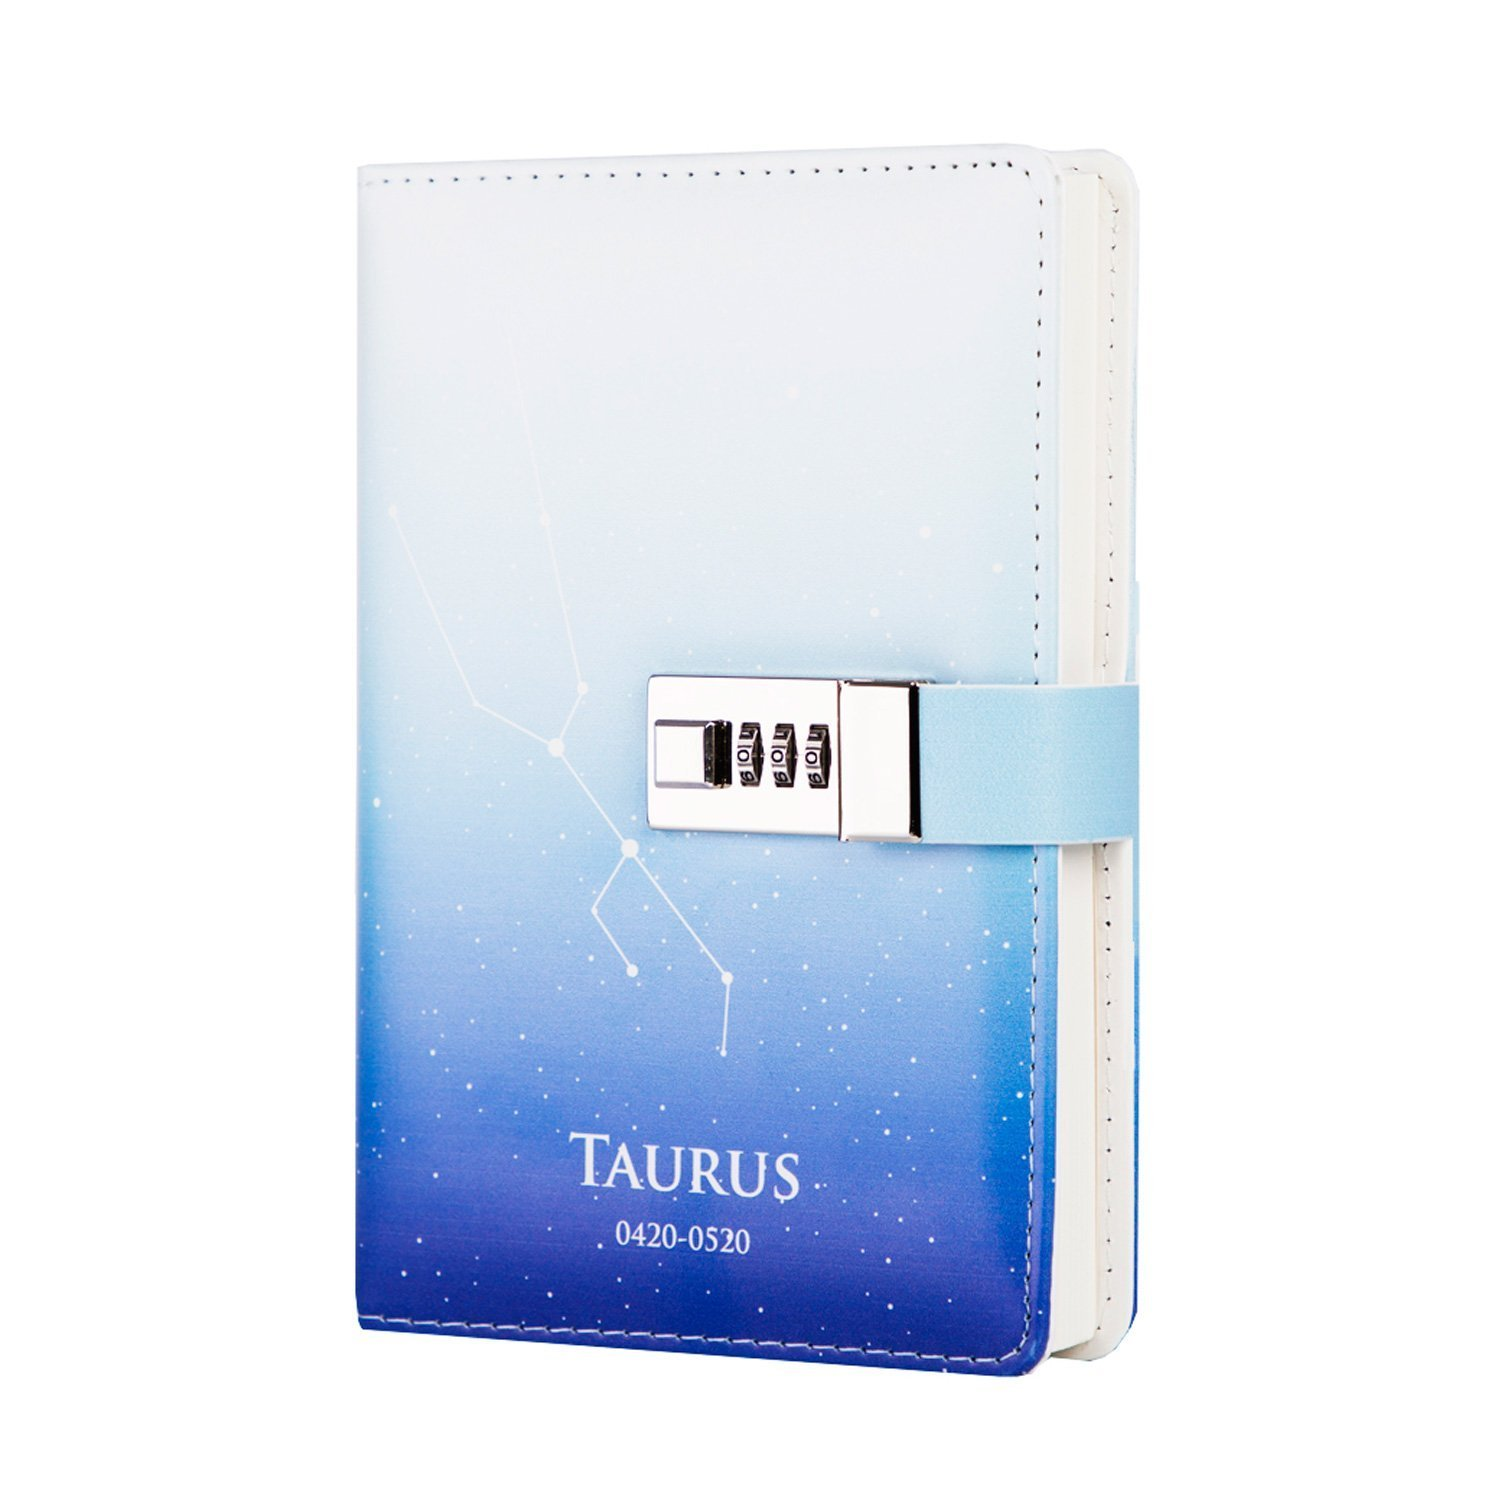 ToiM 12 Constellations PU Leather Journal Writing Notebook Daily Notepad with Combination Lock, B6 Password Diary (Taurus) by ToiM (Image #1)